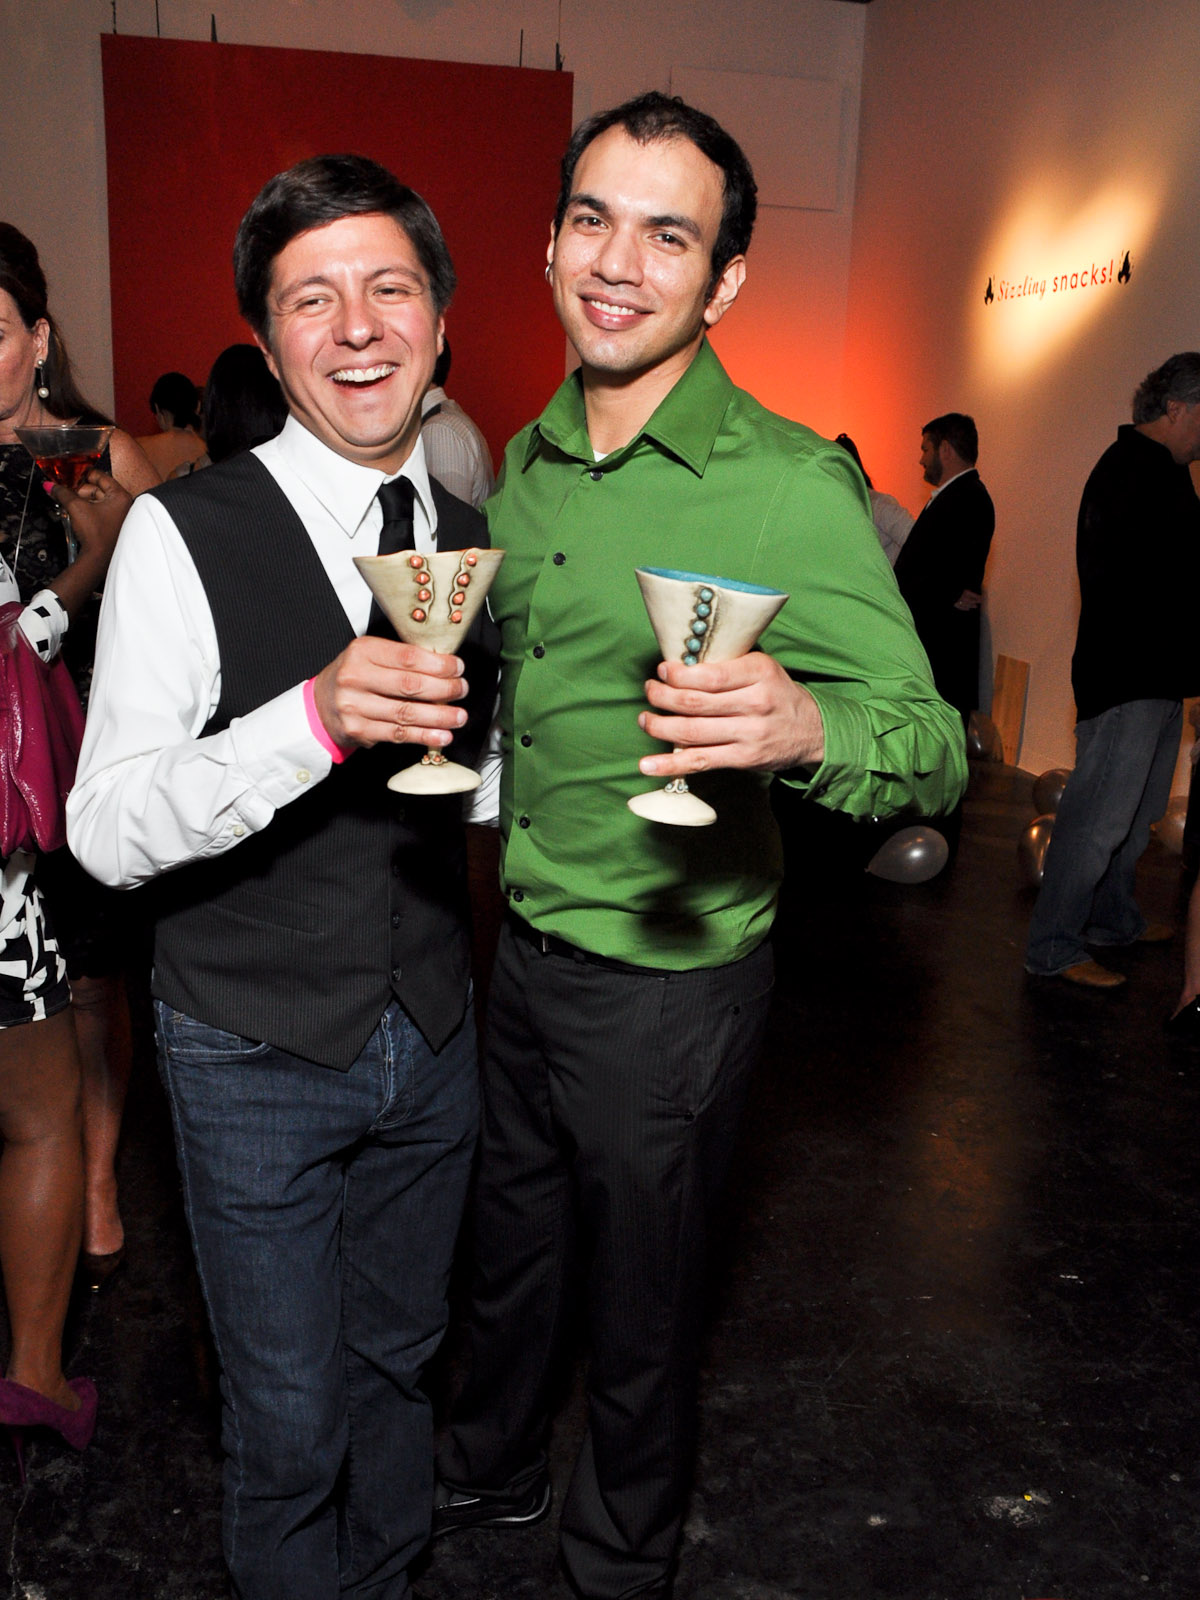 News_Martini Madness_Nick Espinoza_Carlos Meltzer